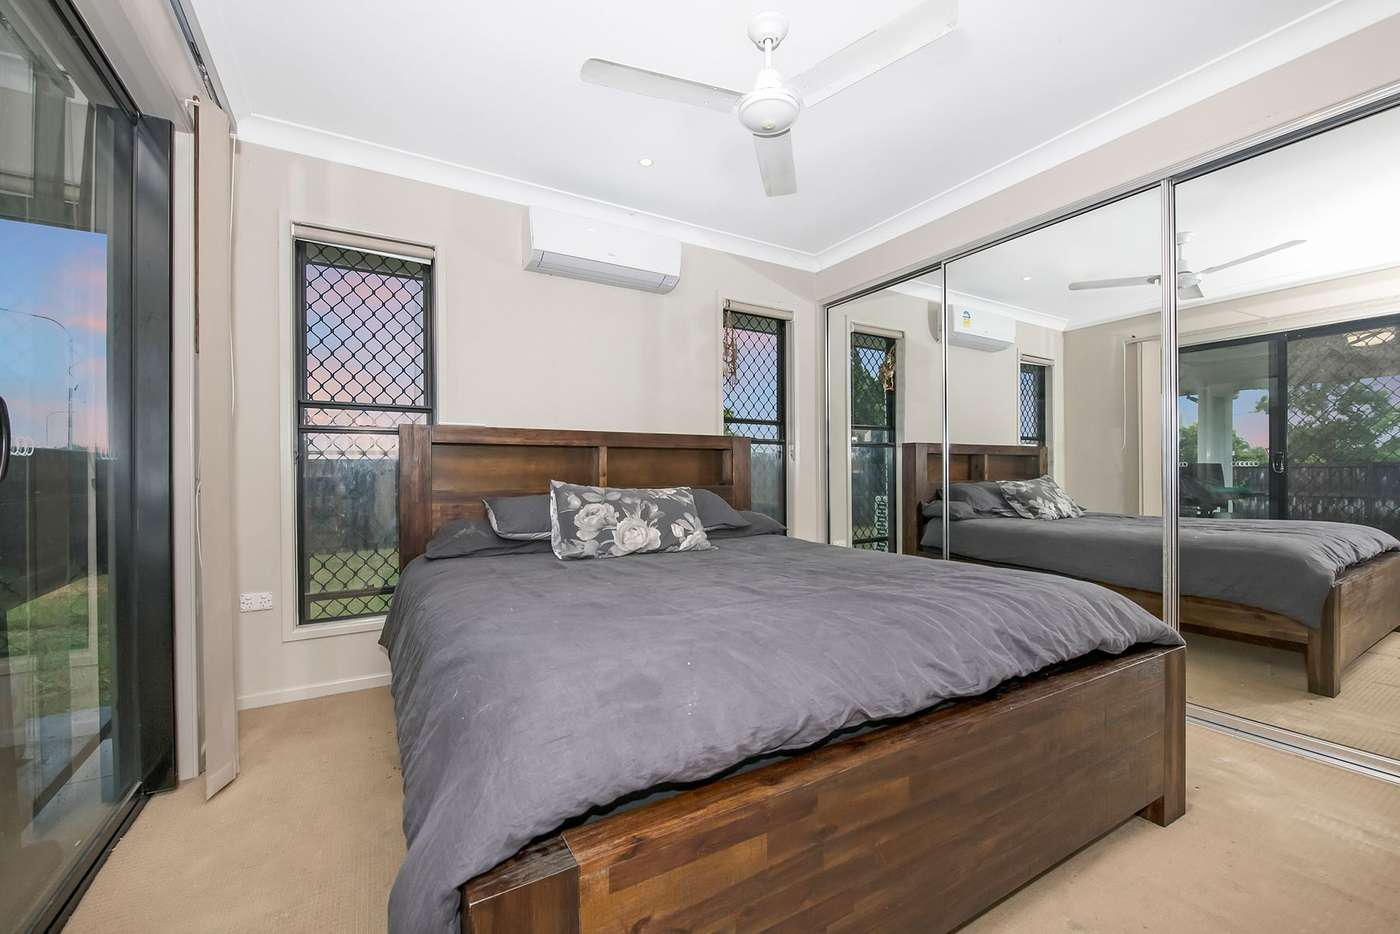 Fifth view of Homely house listing, 2 Tramore Circle, Burdell QLD 4818